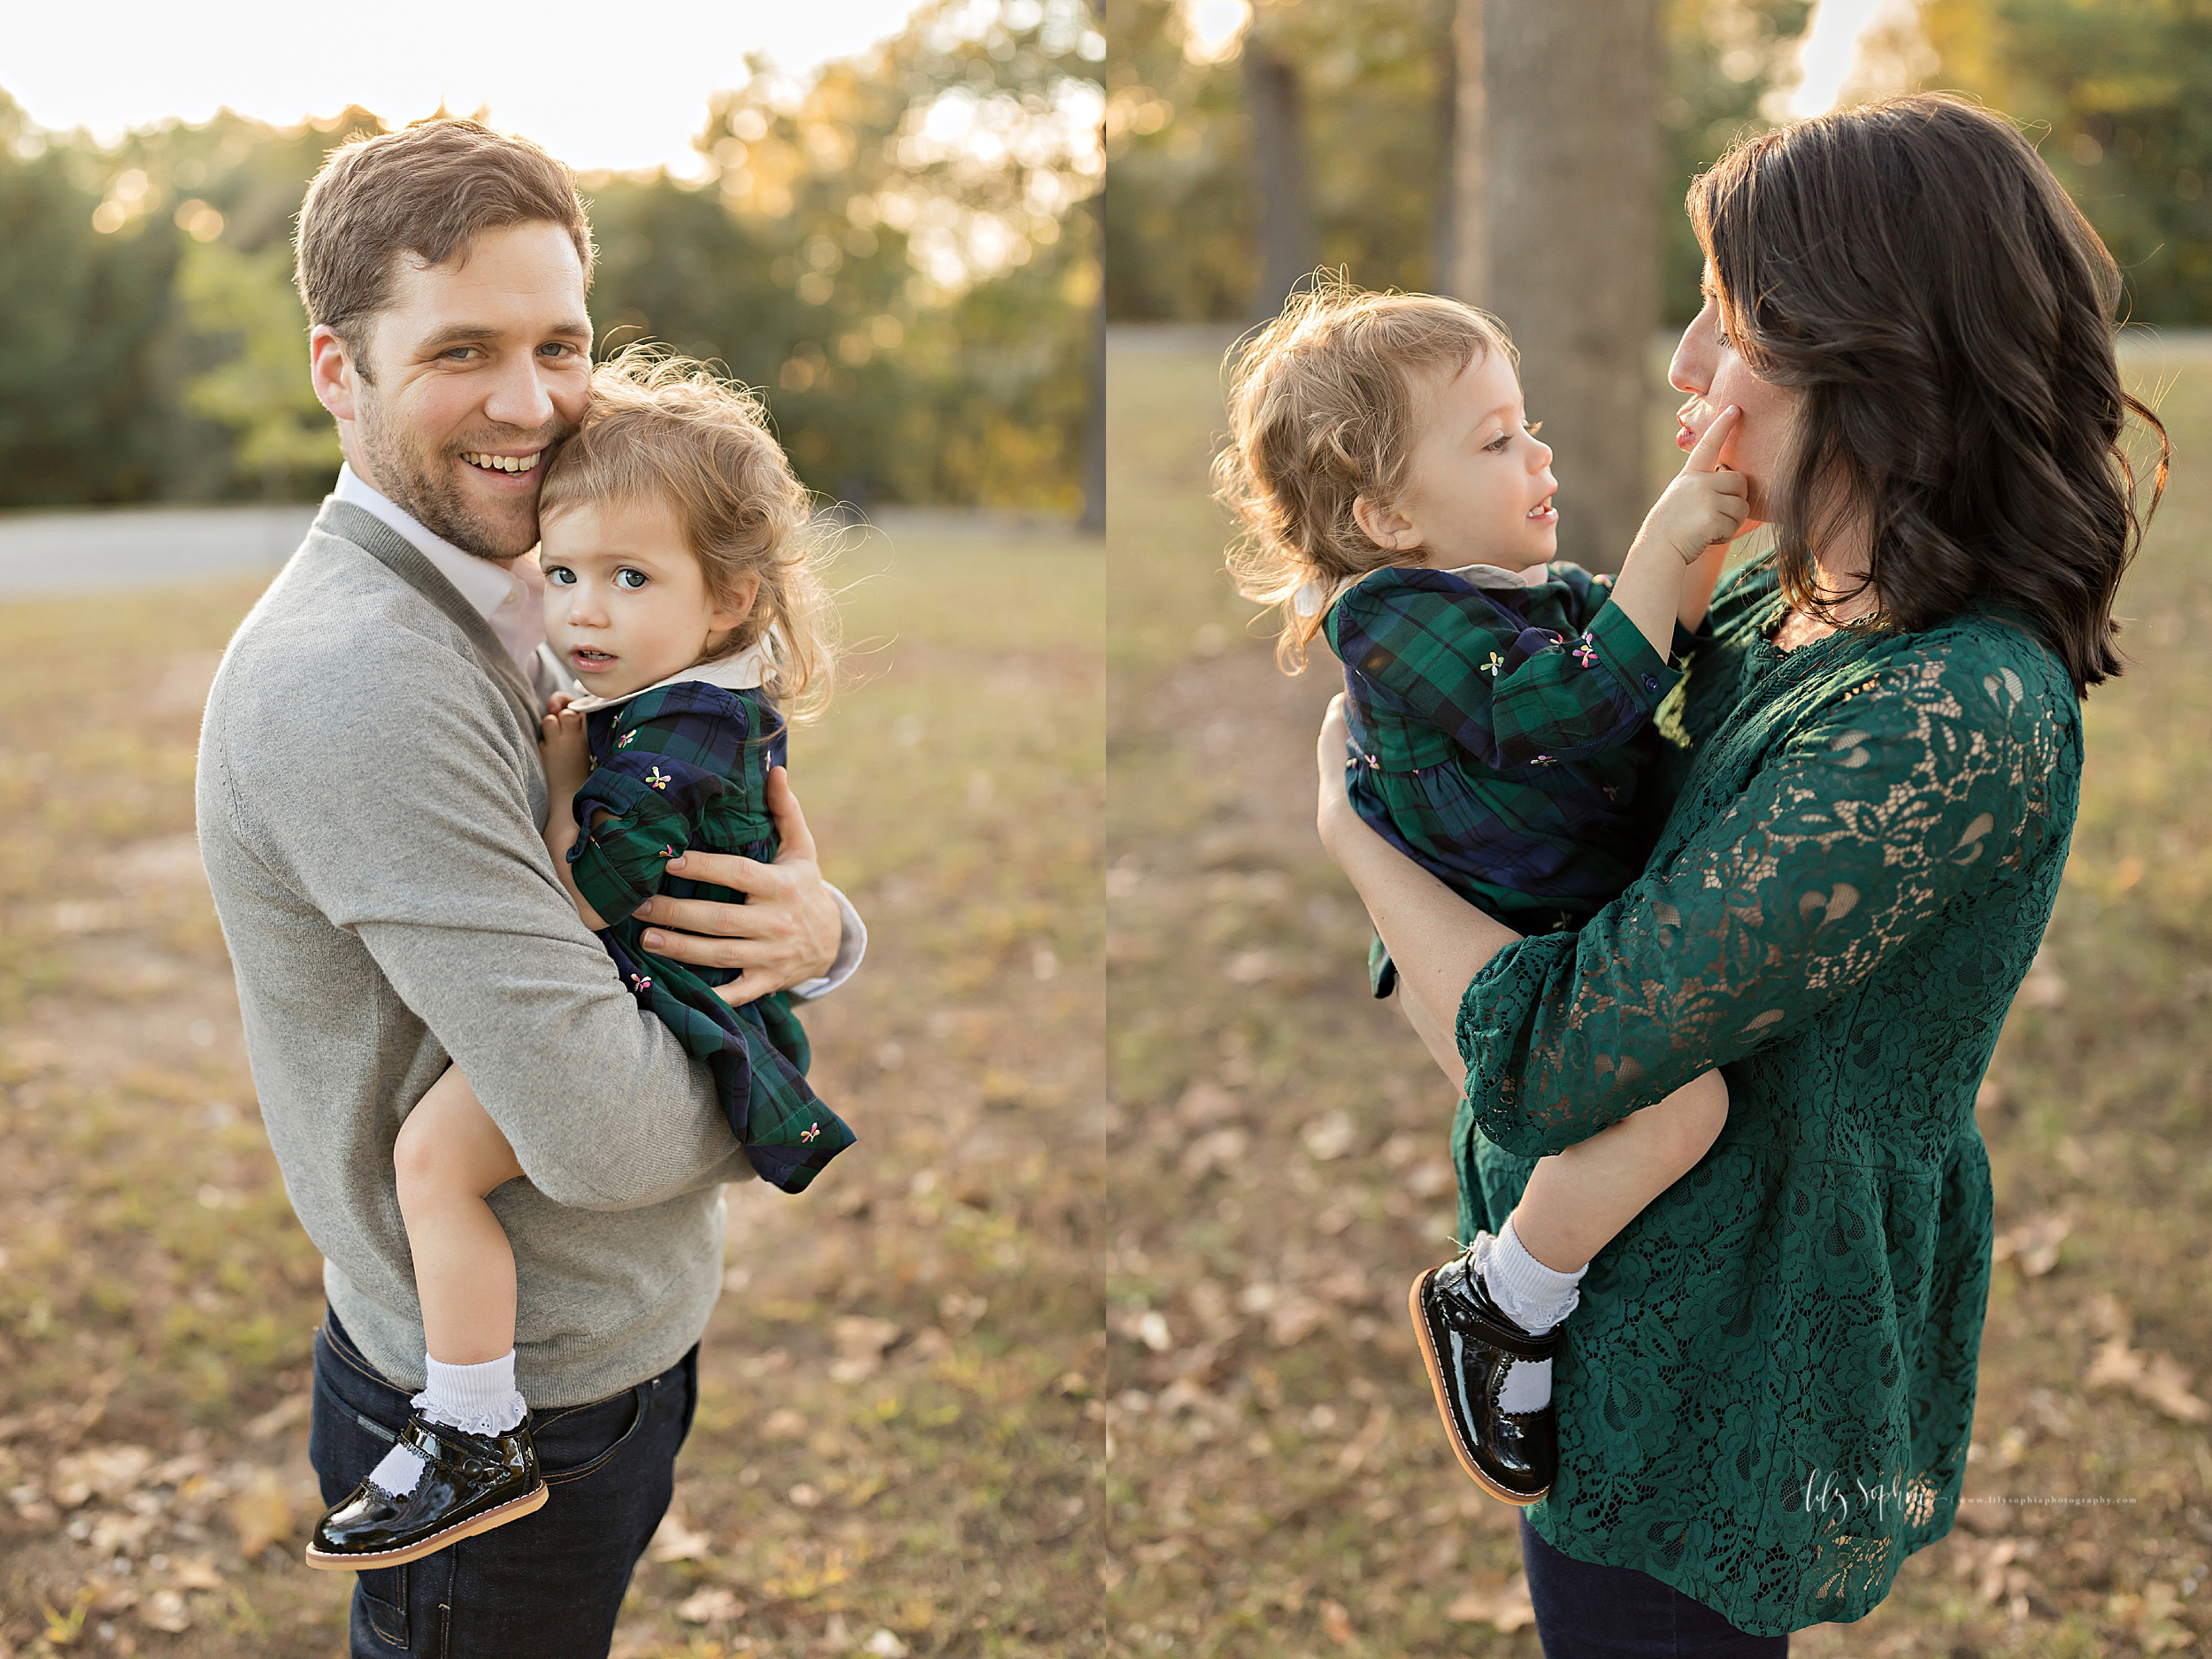 atlanta-buckhead-brookhaven-decatur-lily-sophia-photography-photographer-portraits-grant-park-intown-outdoor-family-sunset-session-toddler-baby-girl_0012.jpg